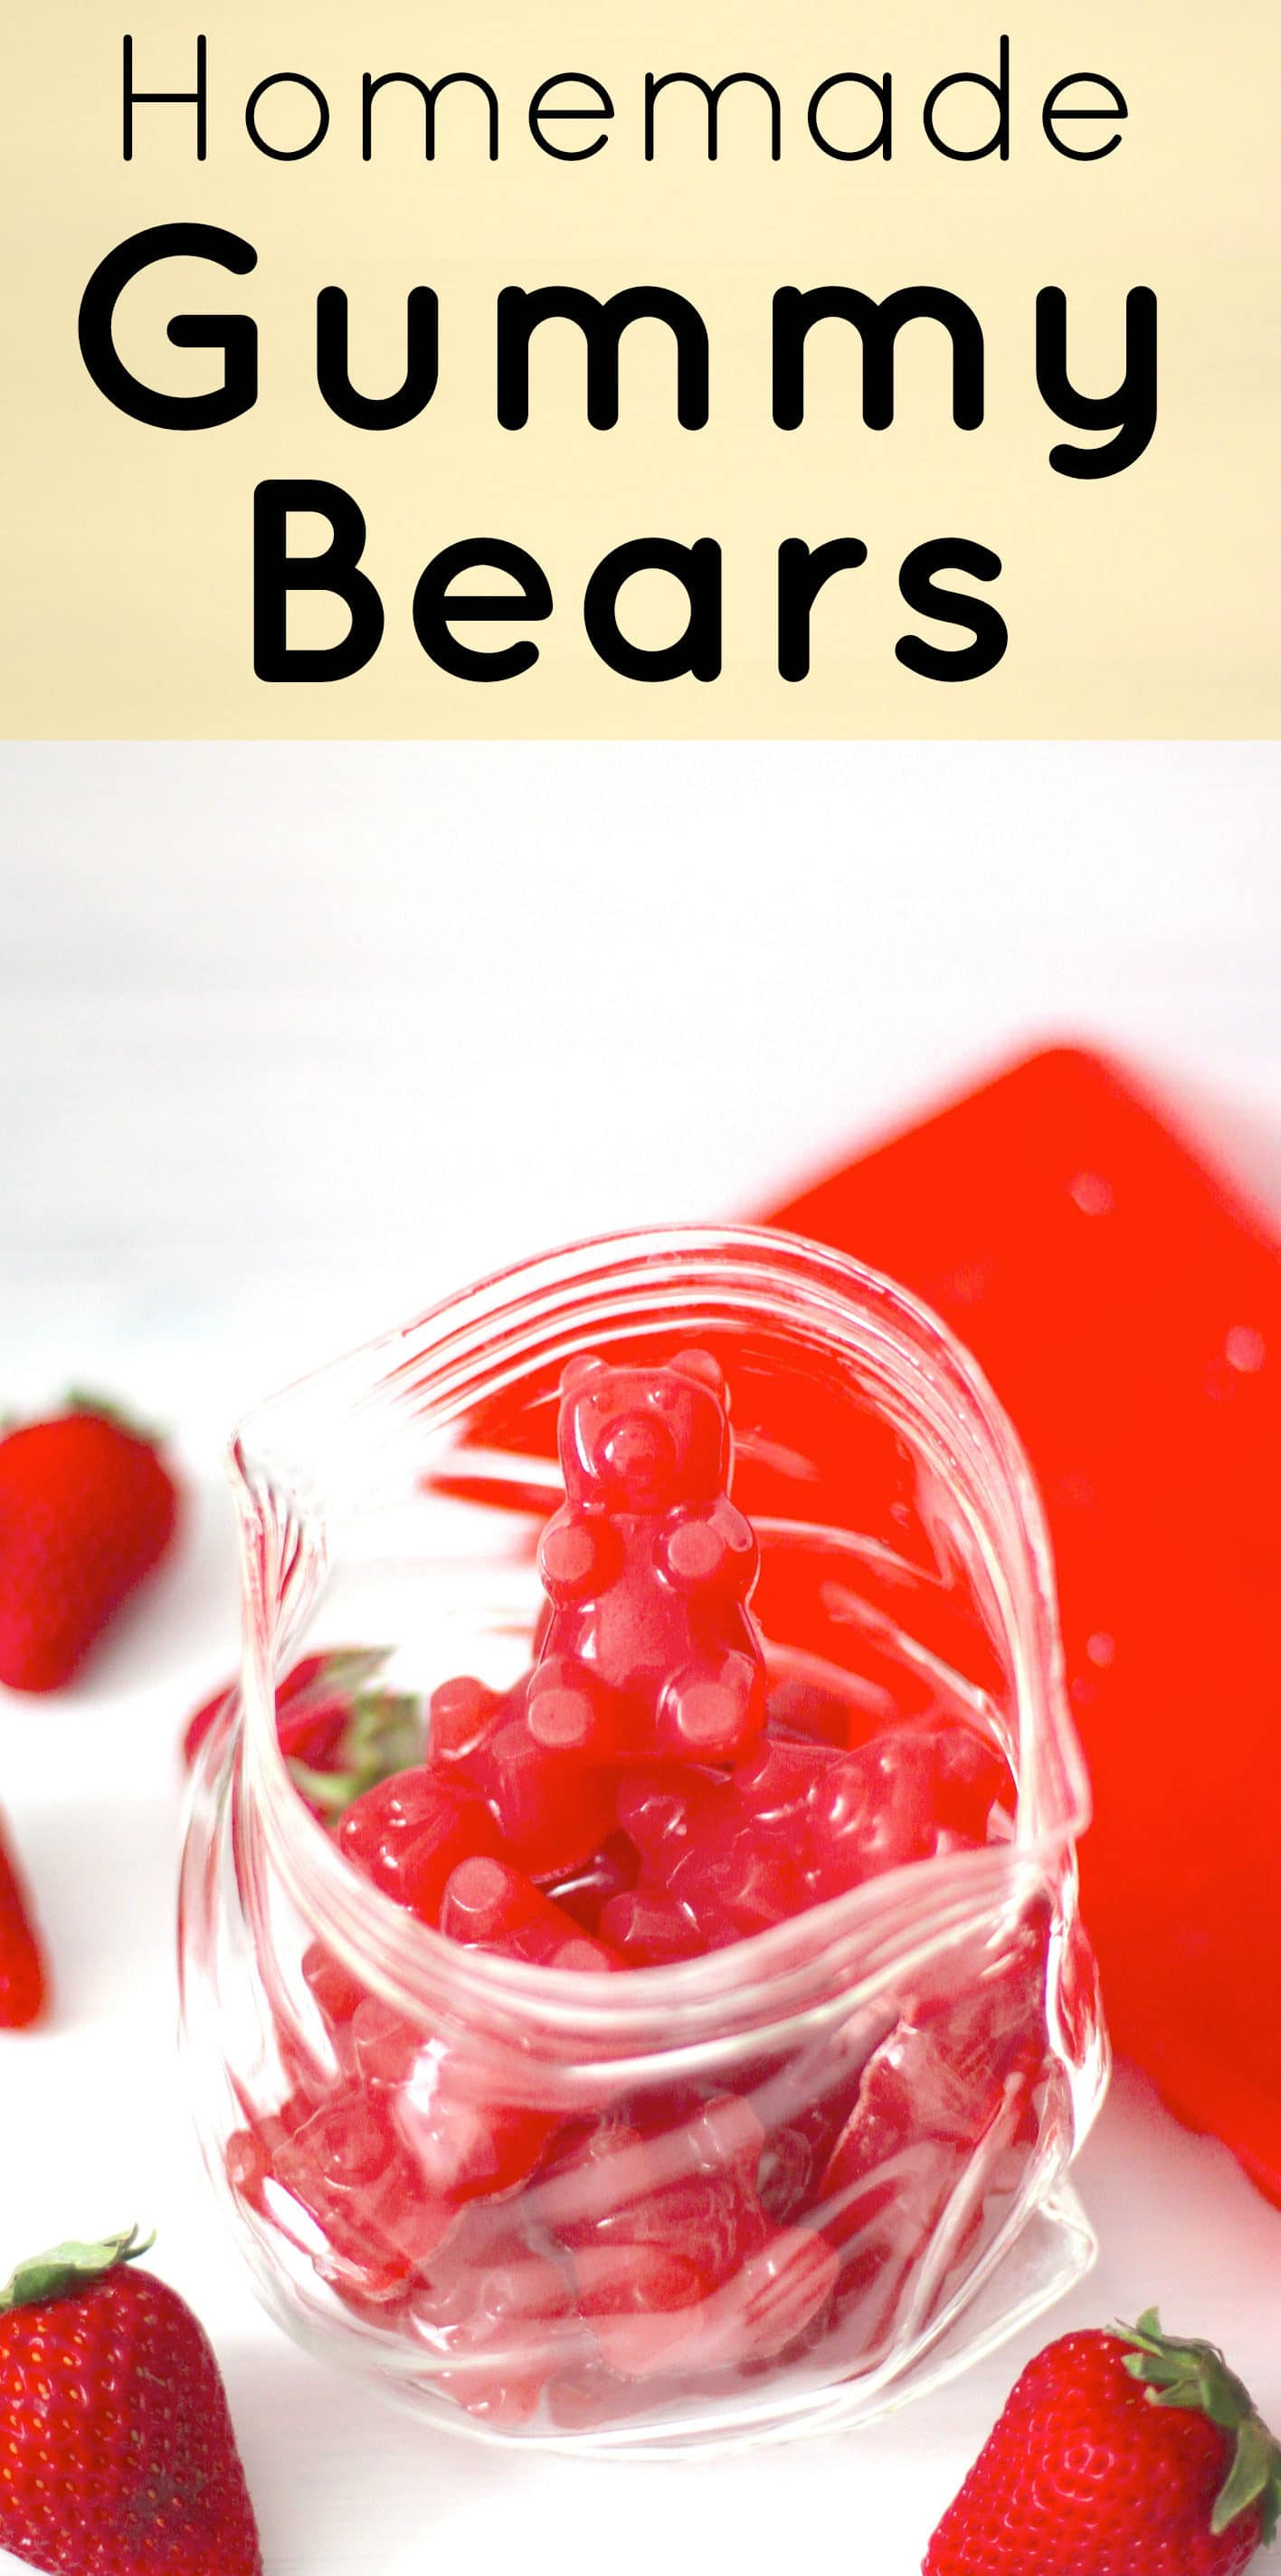 Healthy Homemade Strawberry Gummy Bears (fat free, refined sugar free, low carb) - Healthy Dessert Recipes at Desserts with Benefits